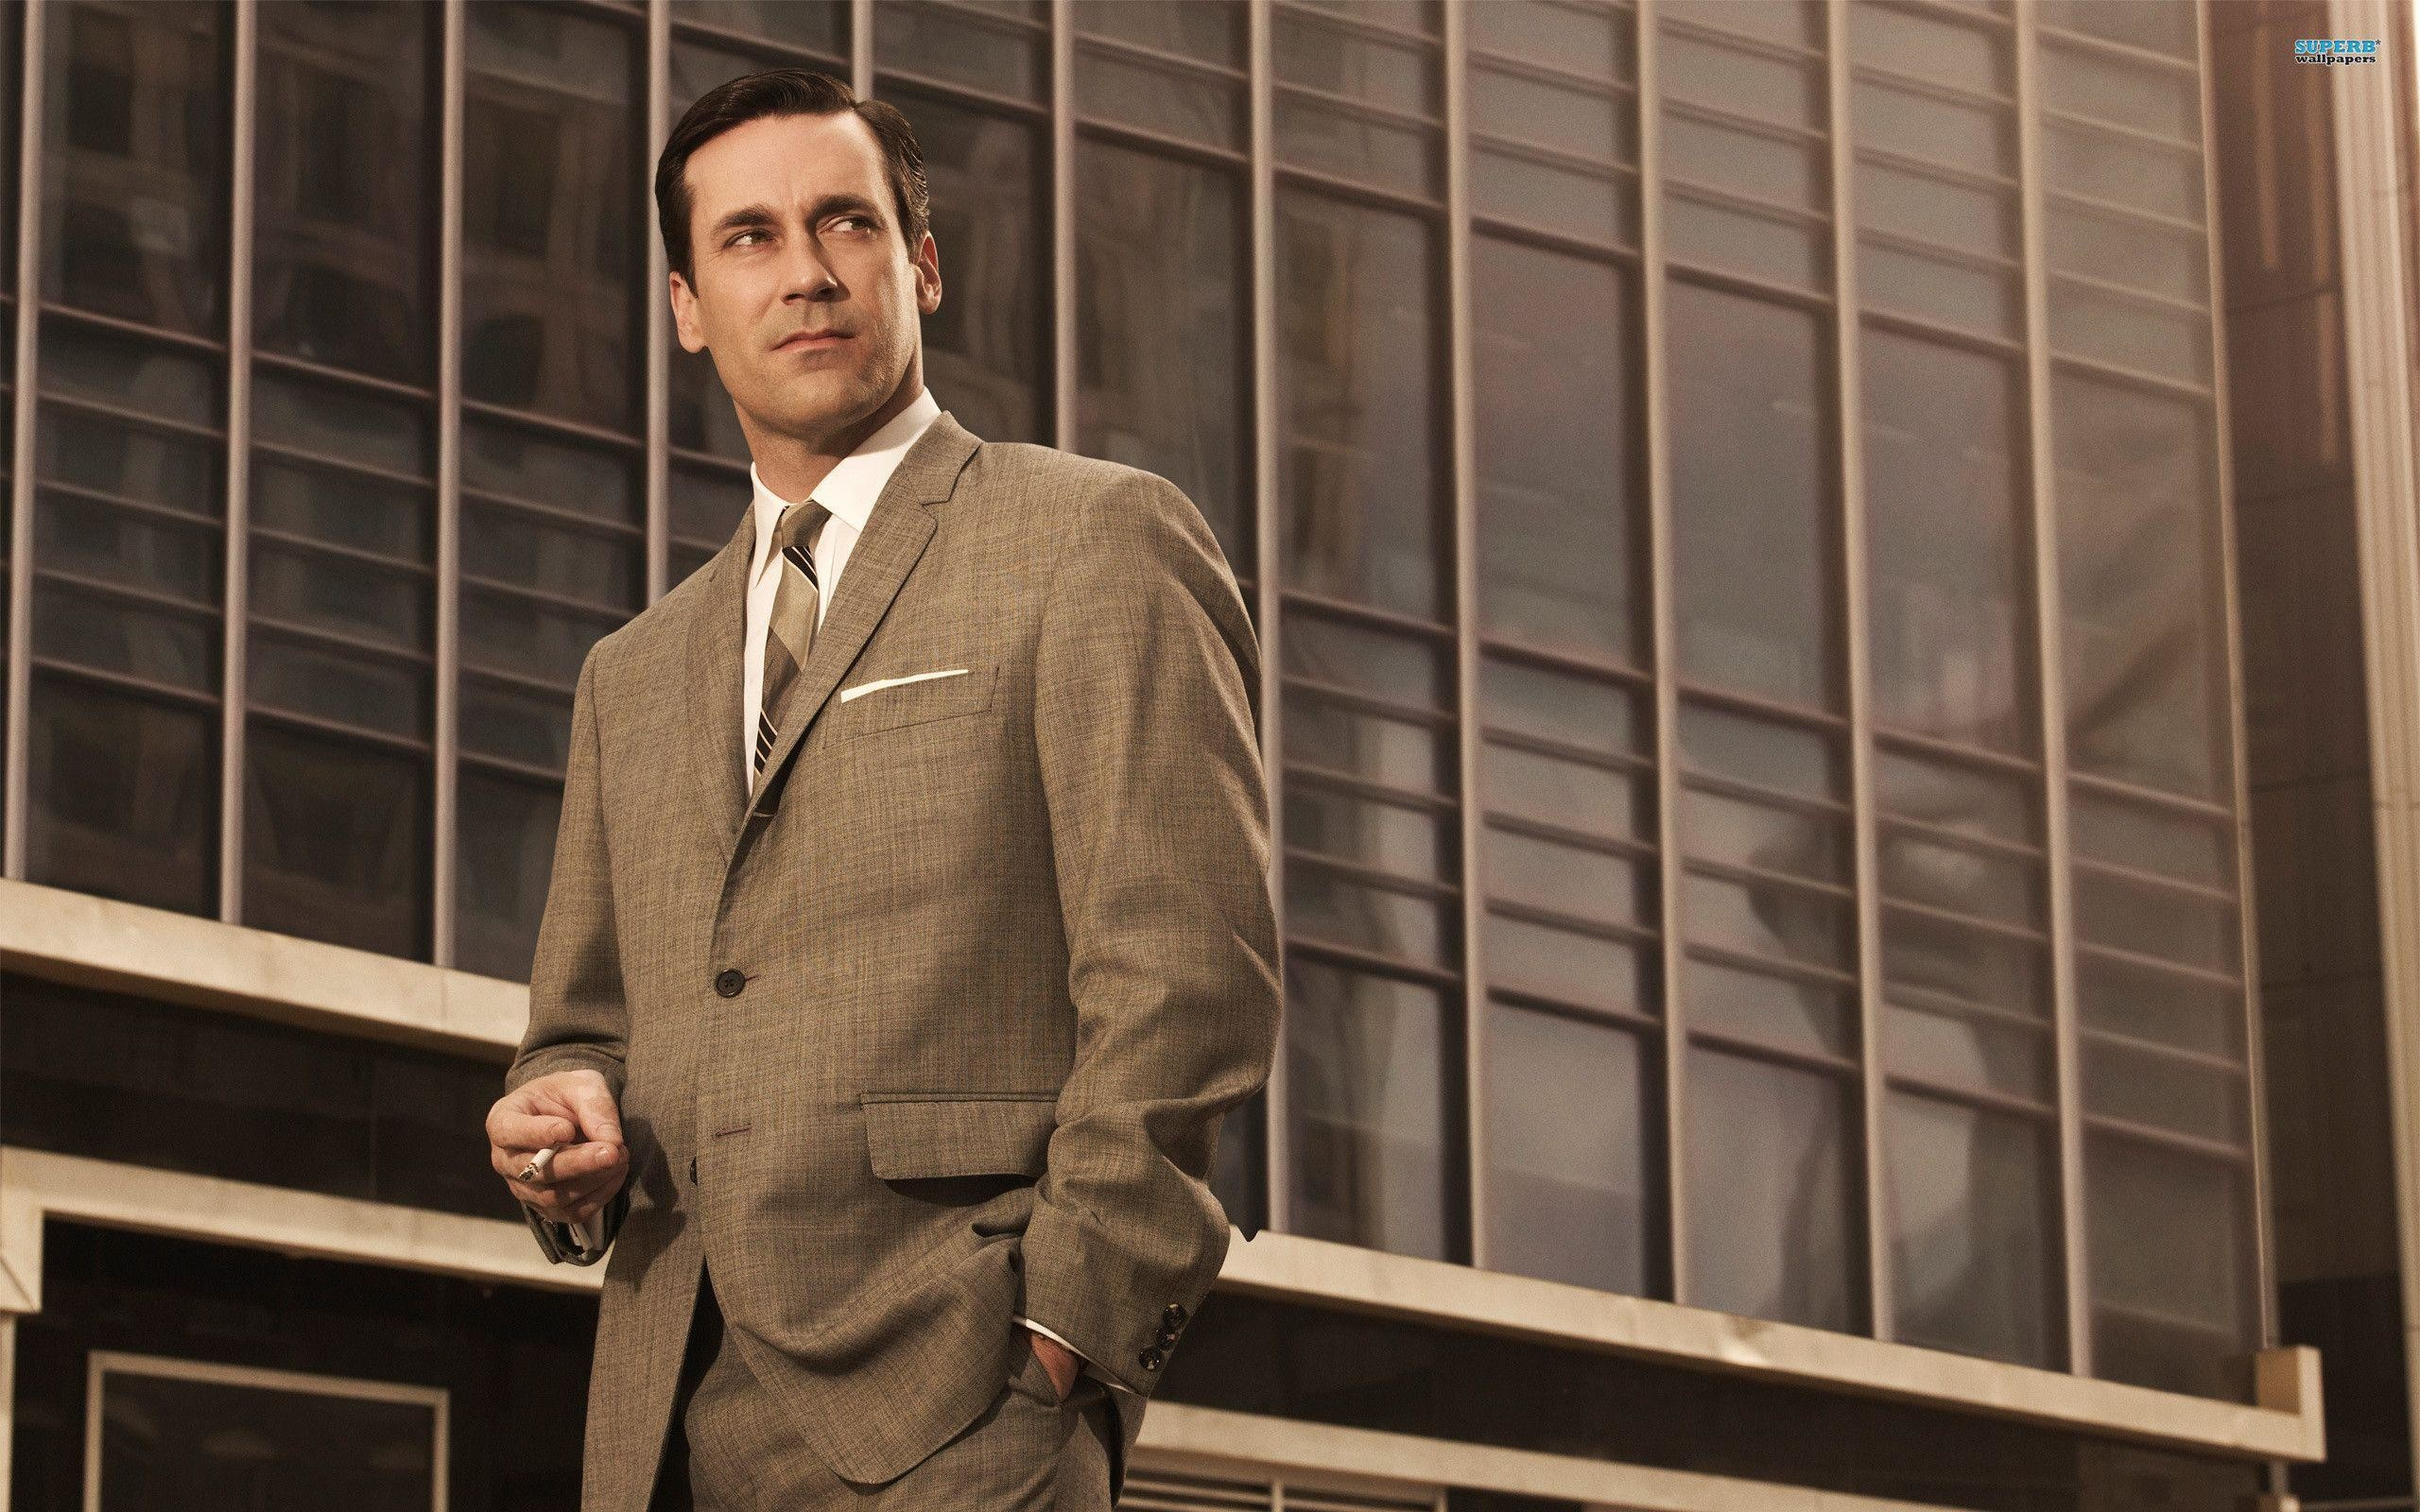 Res: 2560x1600, Jon Hamm Wallpapers - HD Wallpapers Inn